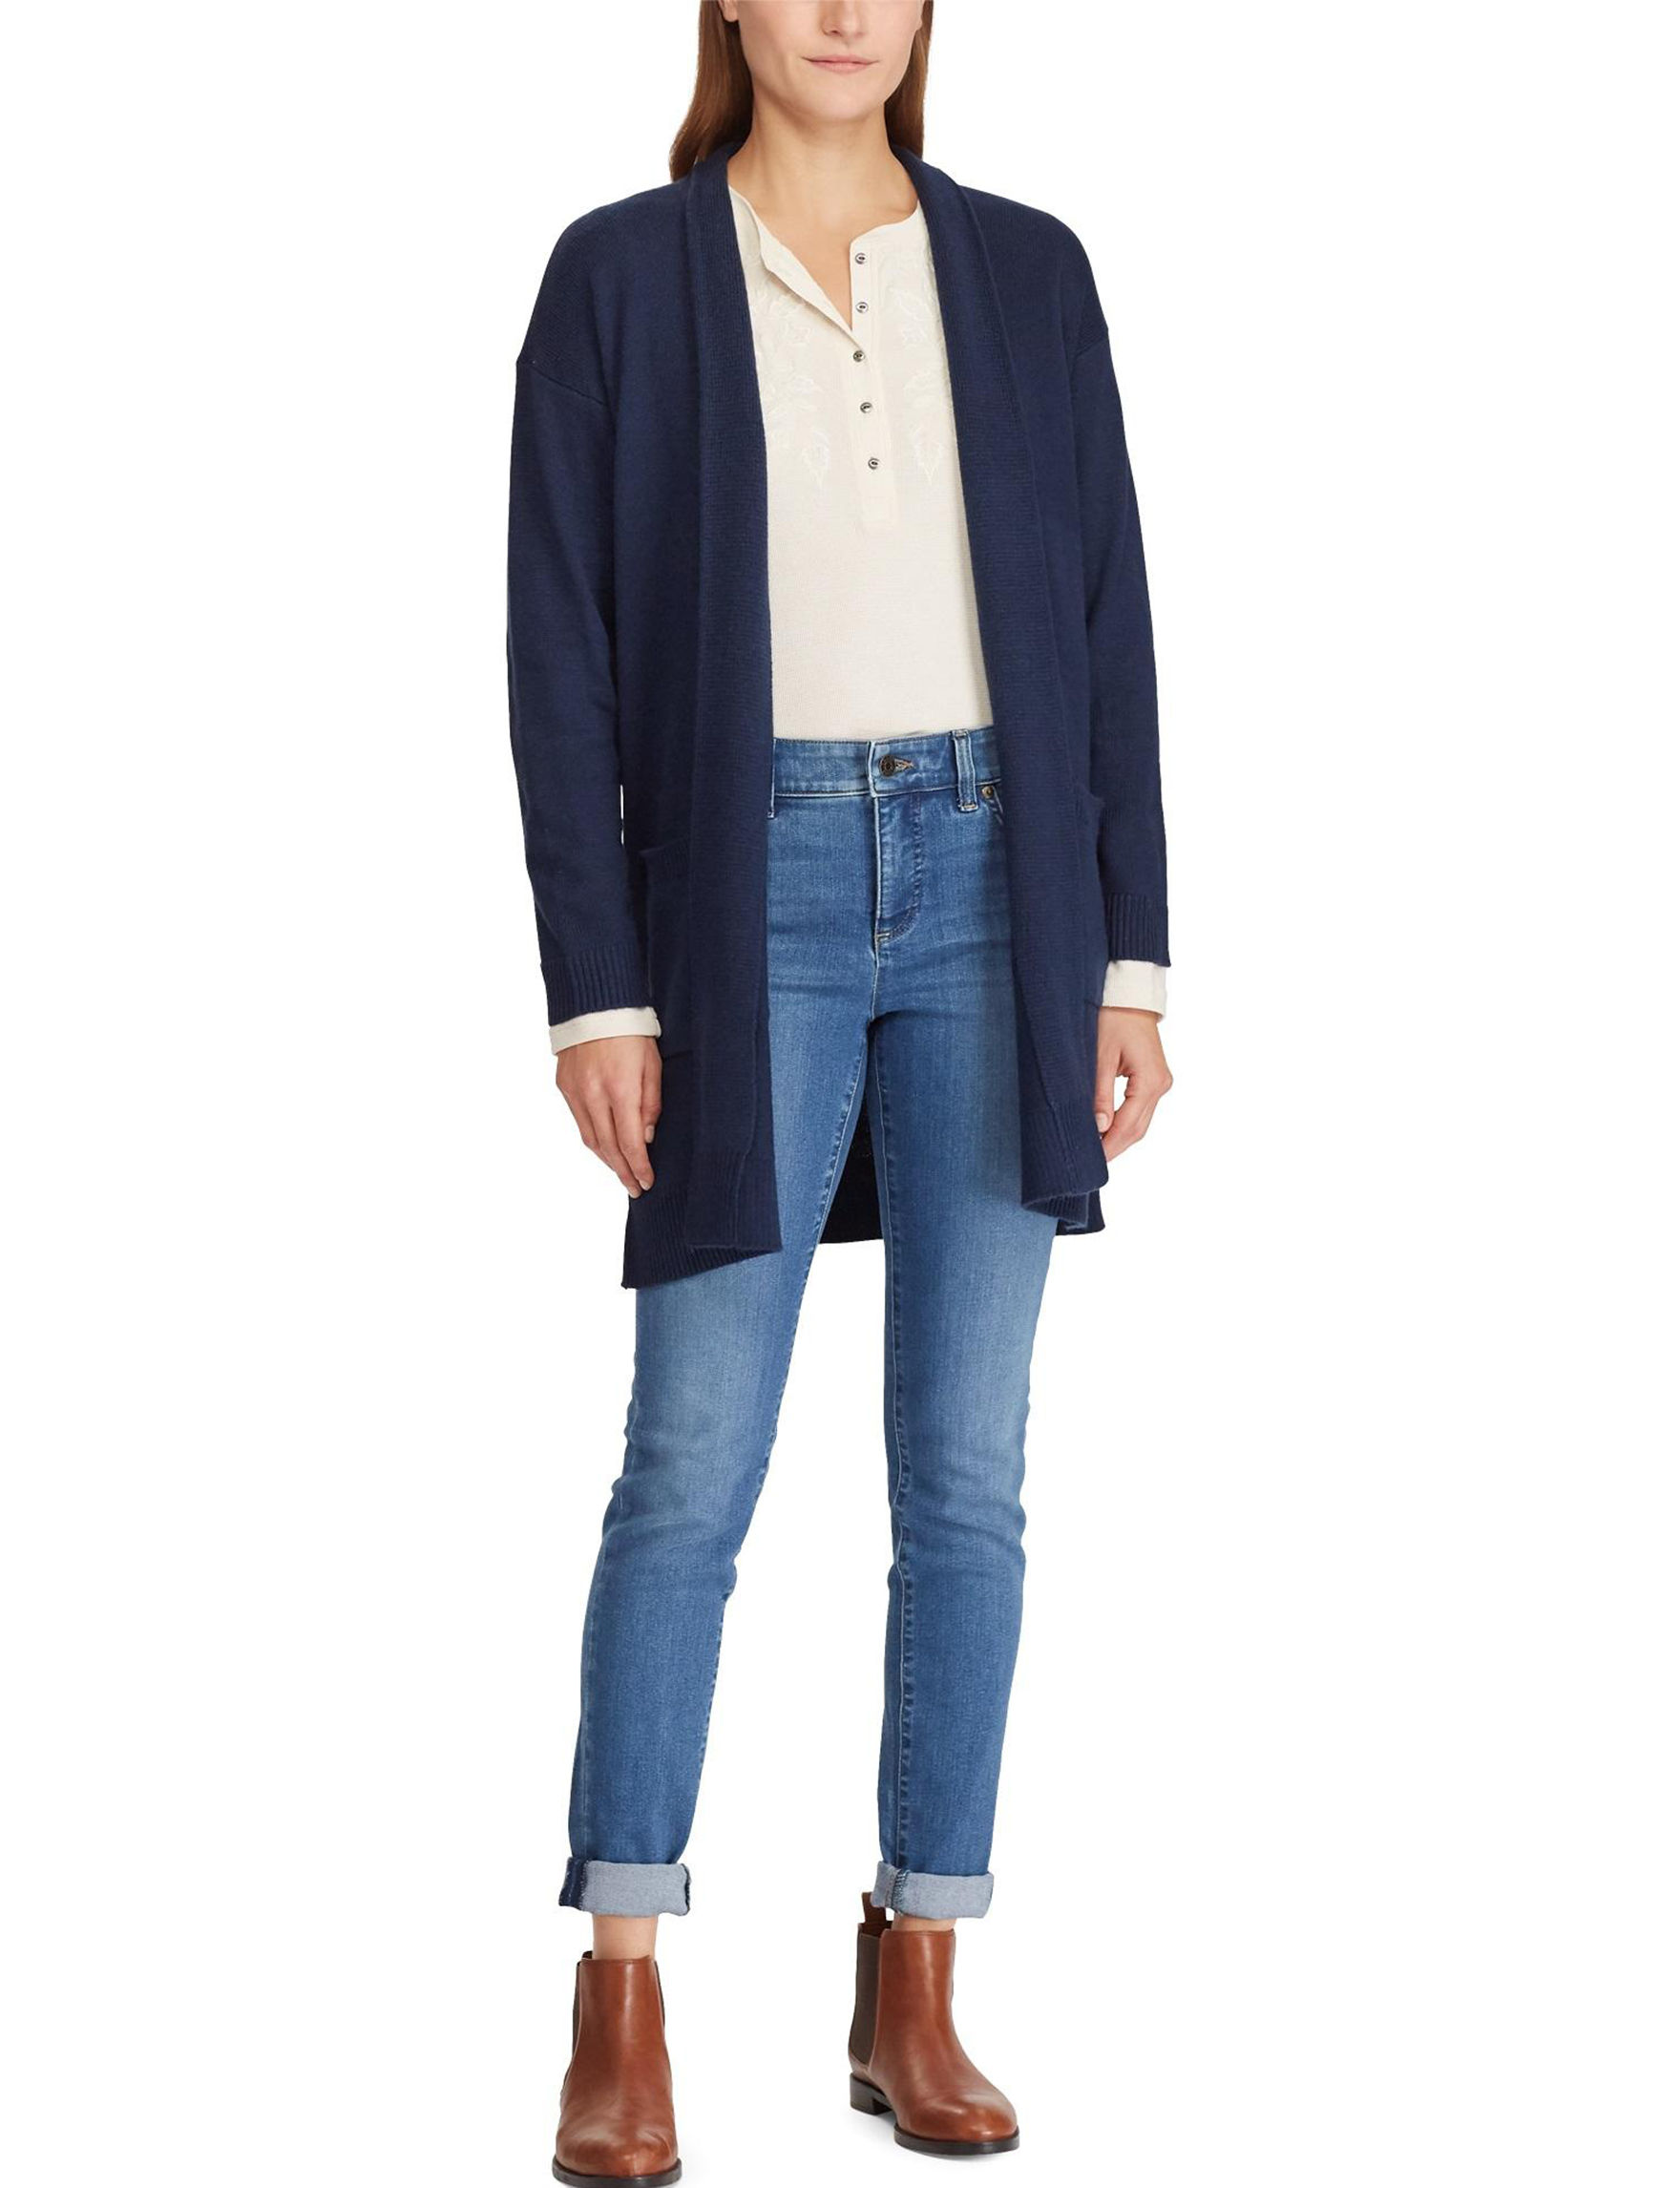 Chaps Navy Cardigans